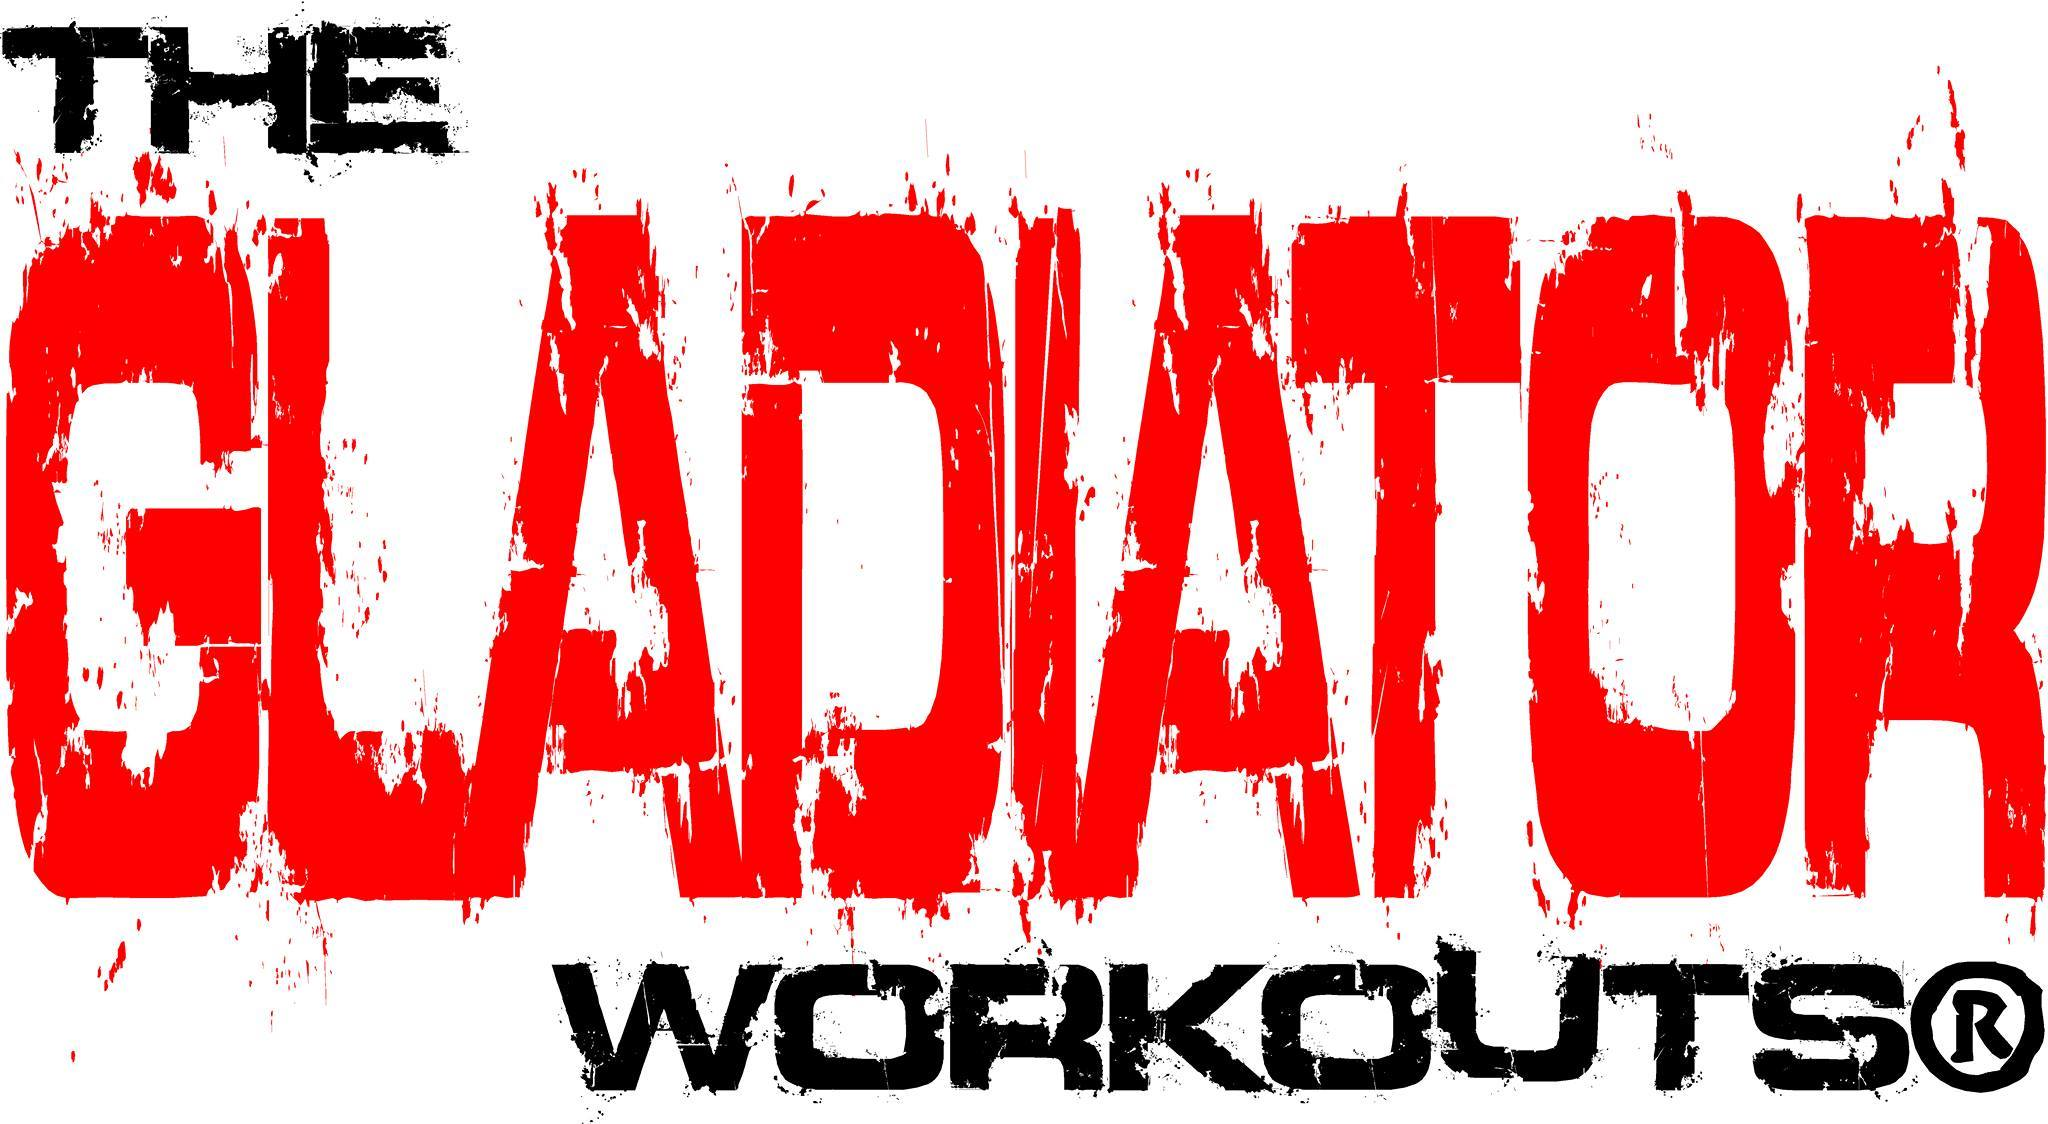 The Gladiator Workouts